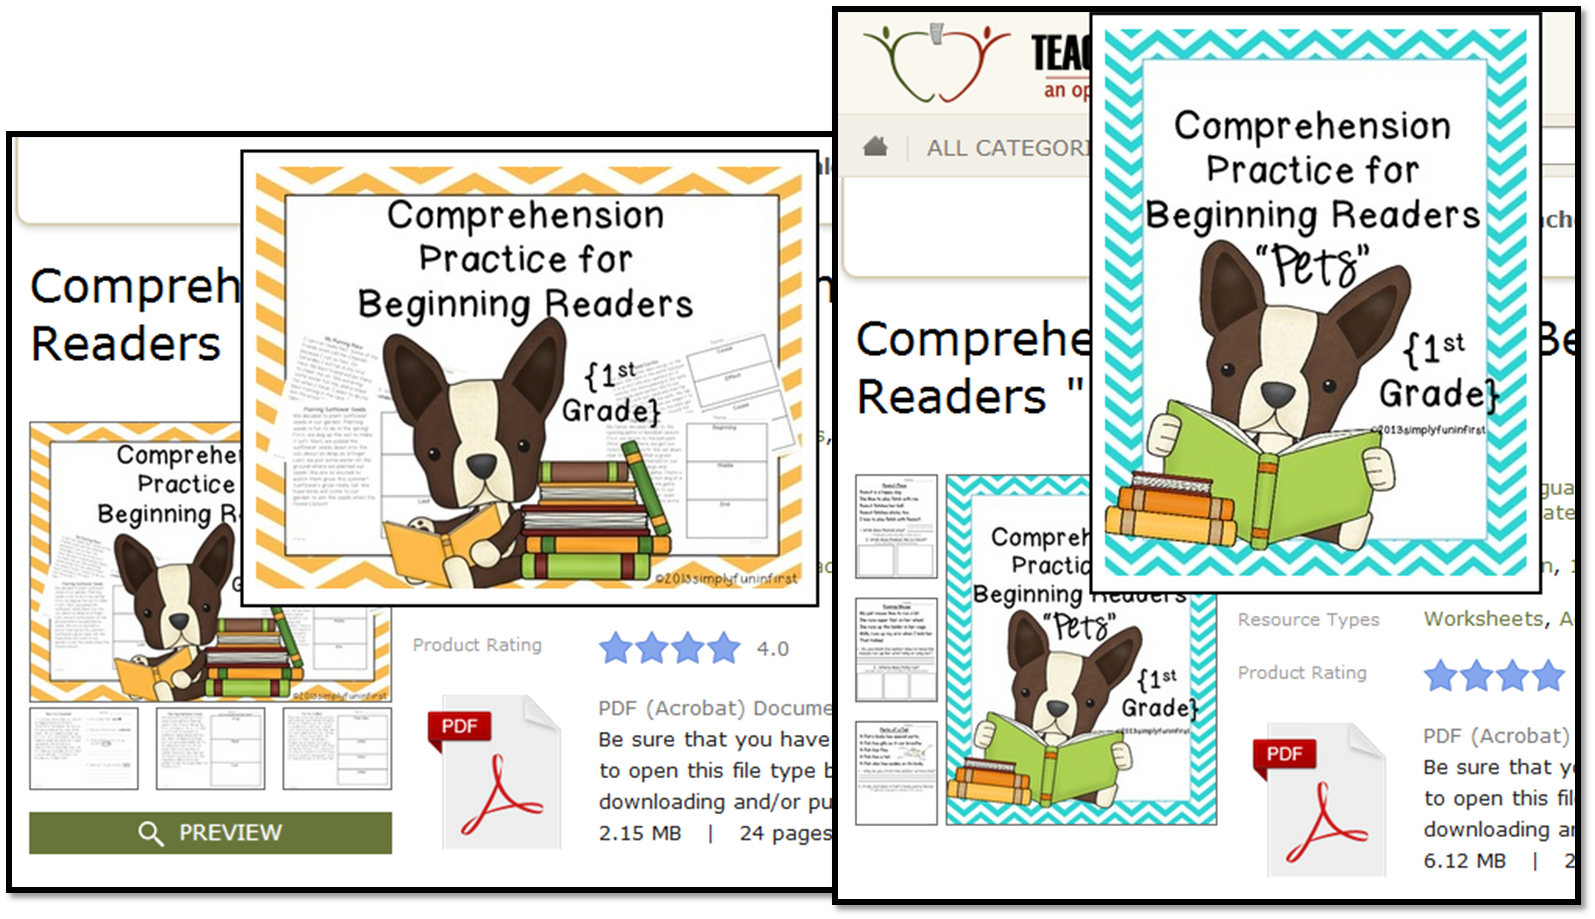 http://www.teacherspayteachers.com/Product/Comprehension-Practice-for-Beginning-Readers-1st-Grade-590694